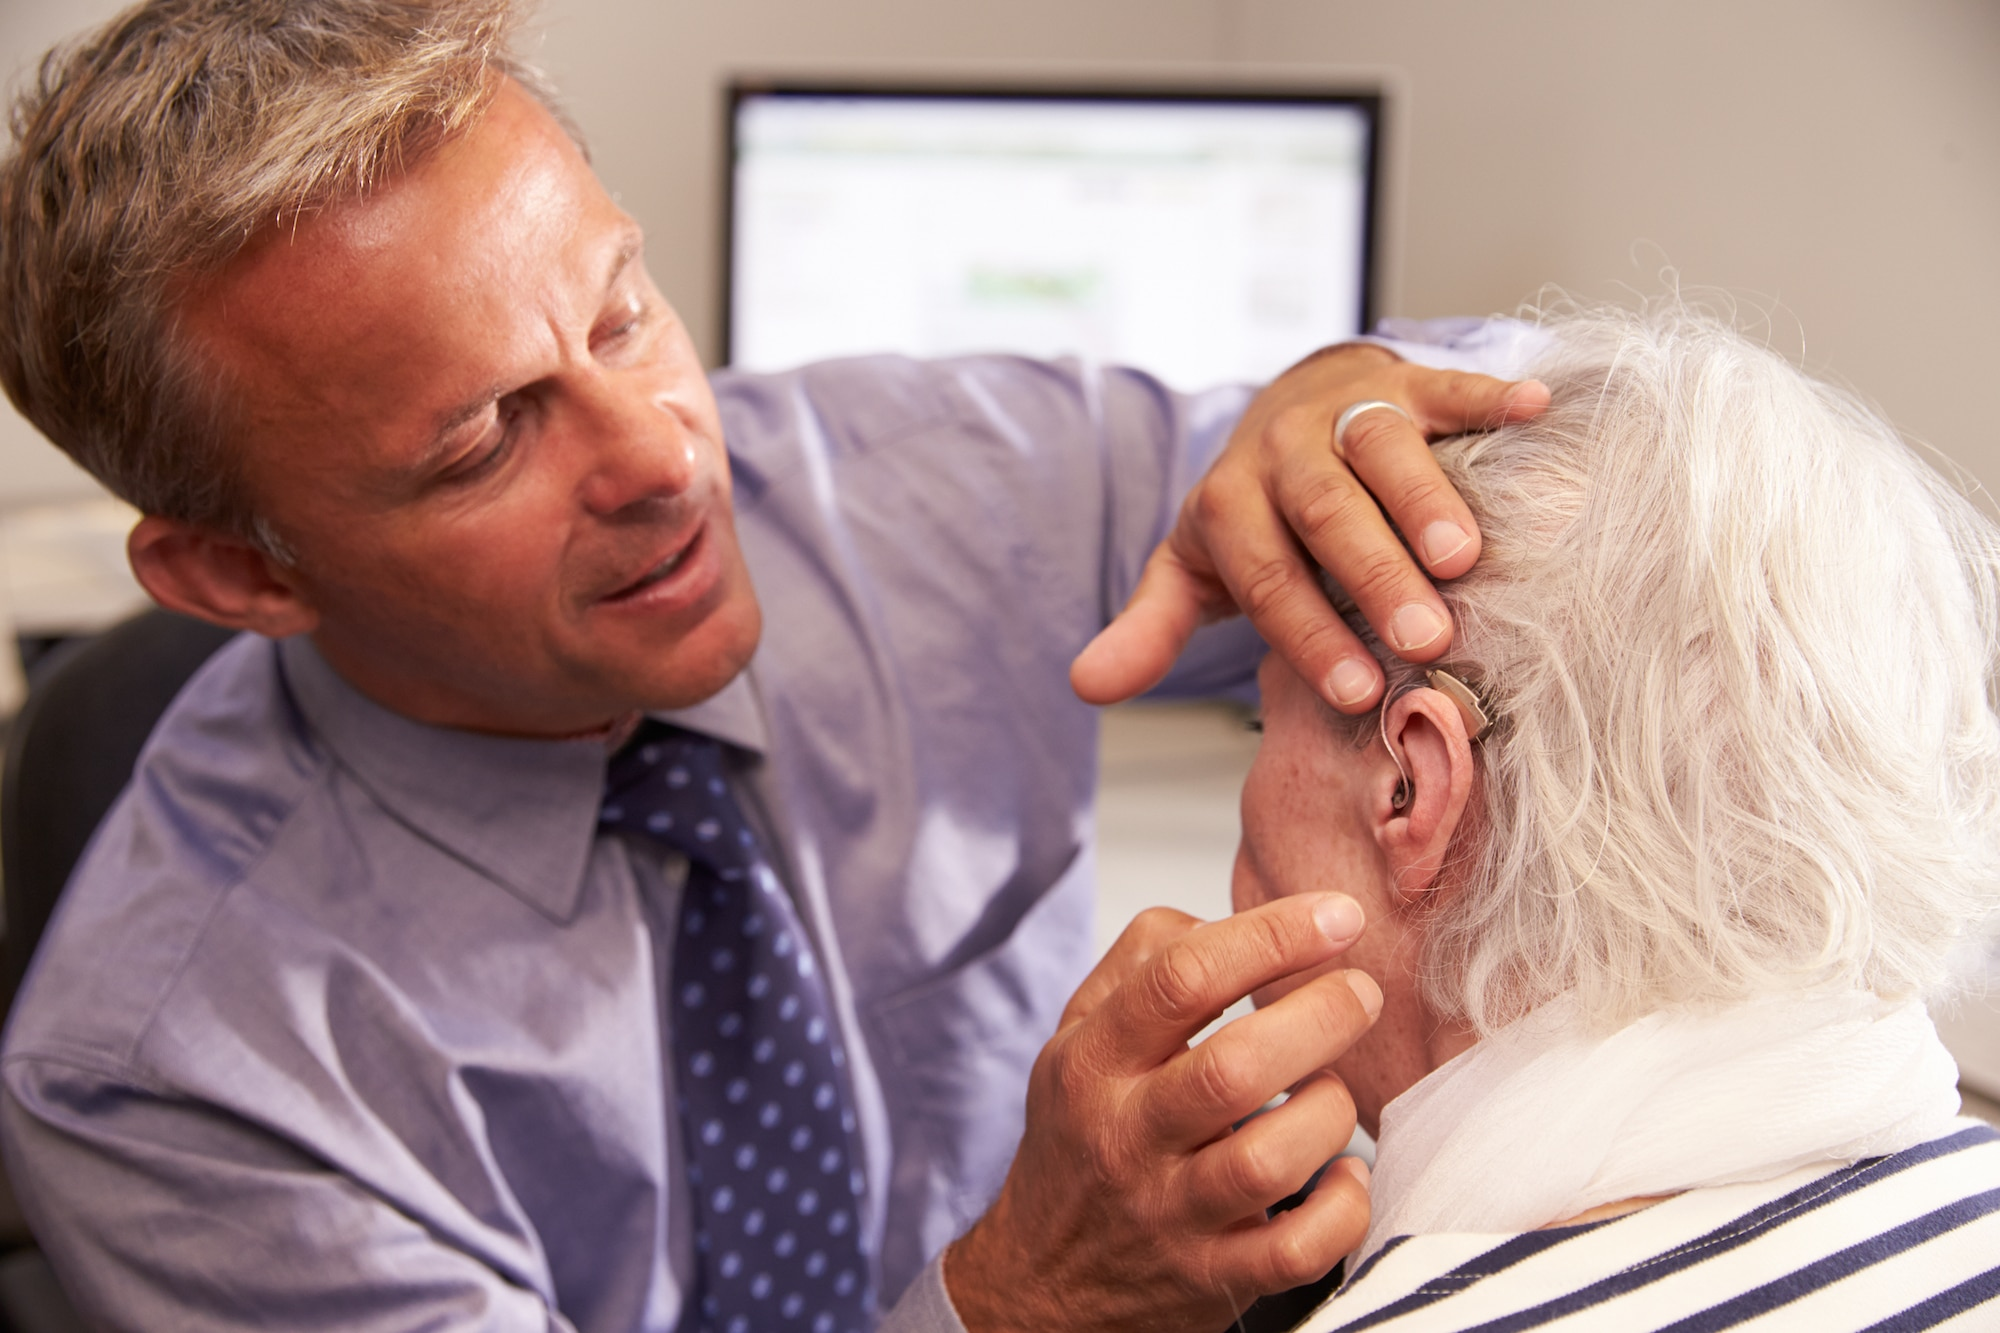 man having his hearing aid fit